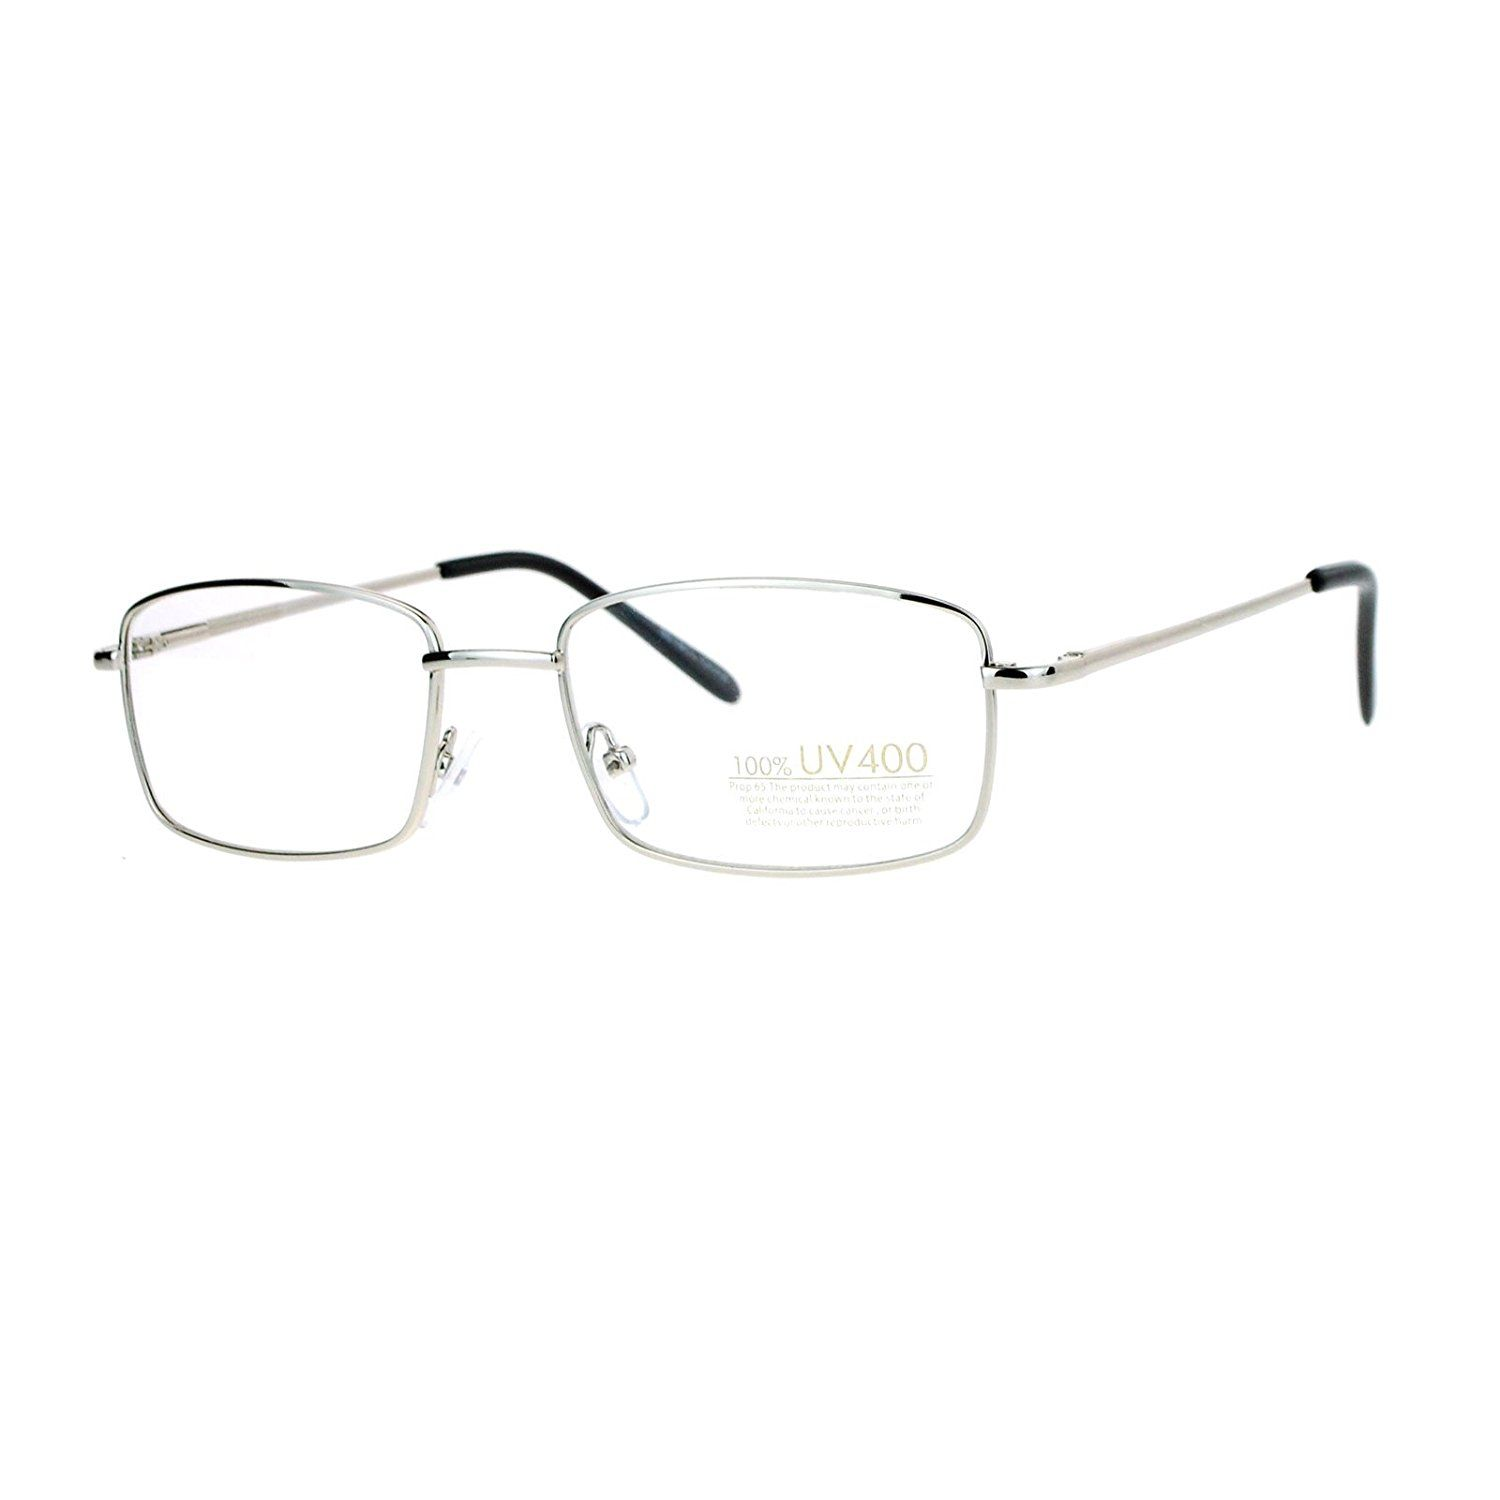 Amazon.com: Silver Small Frame Eyeglasses Thin Metal Rectangular ...